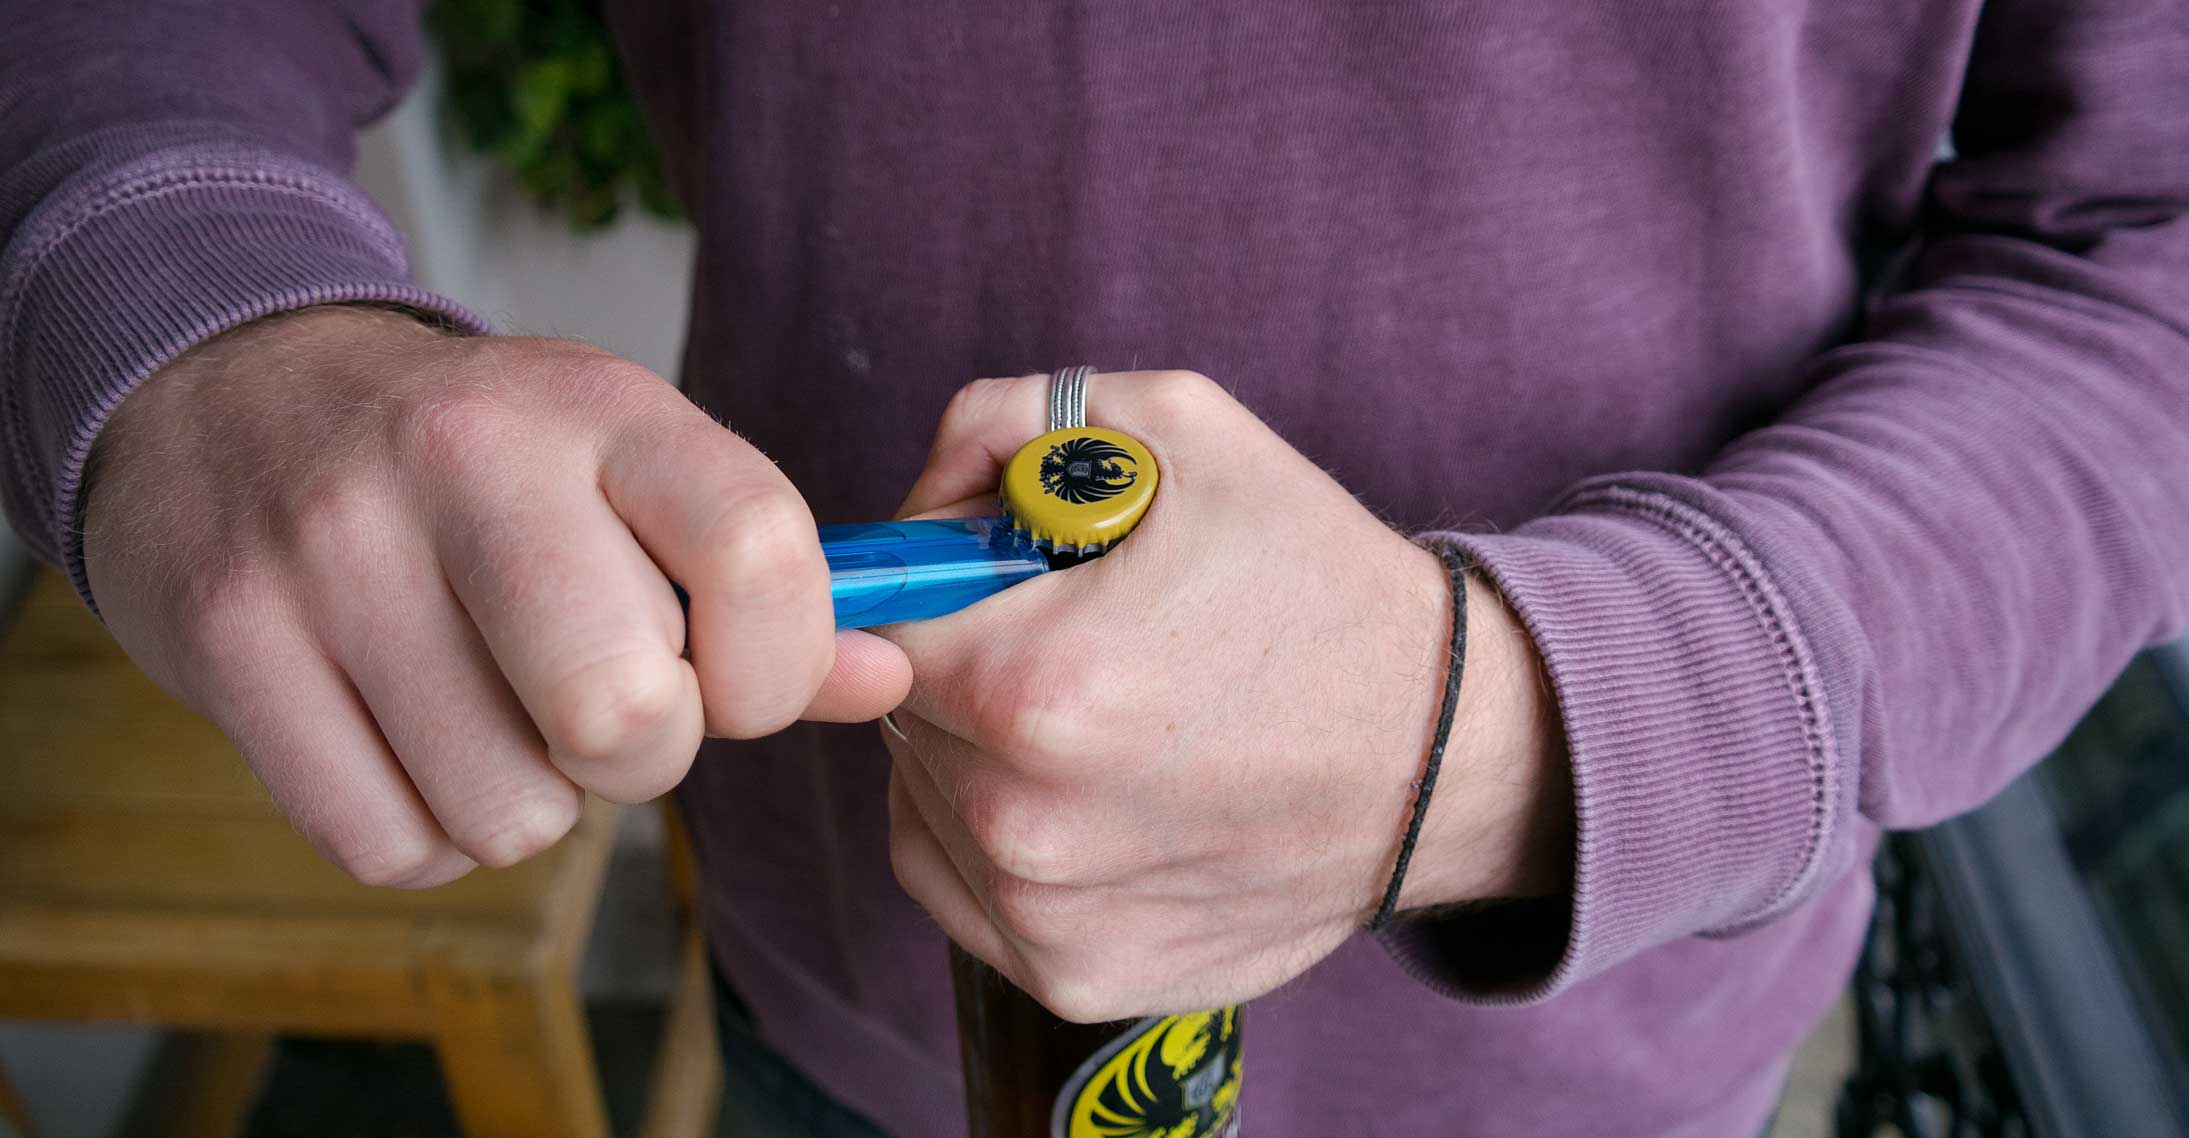 Quick Tricks – Opening a bottle with a lighter